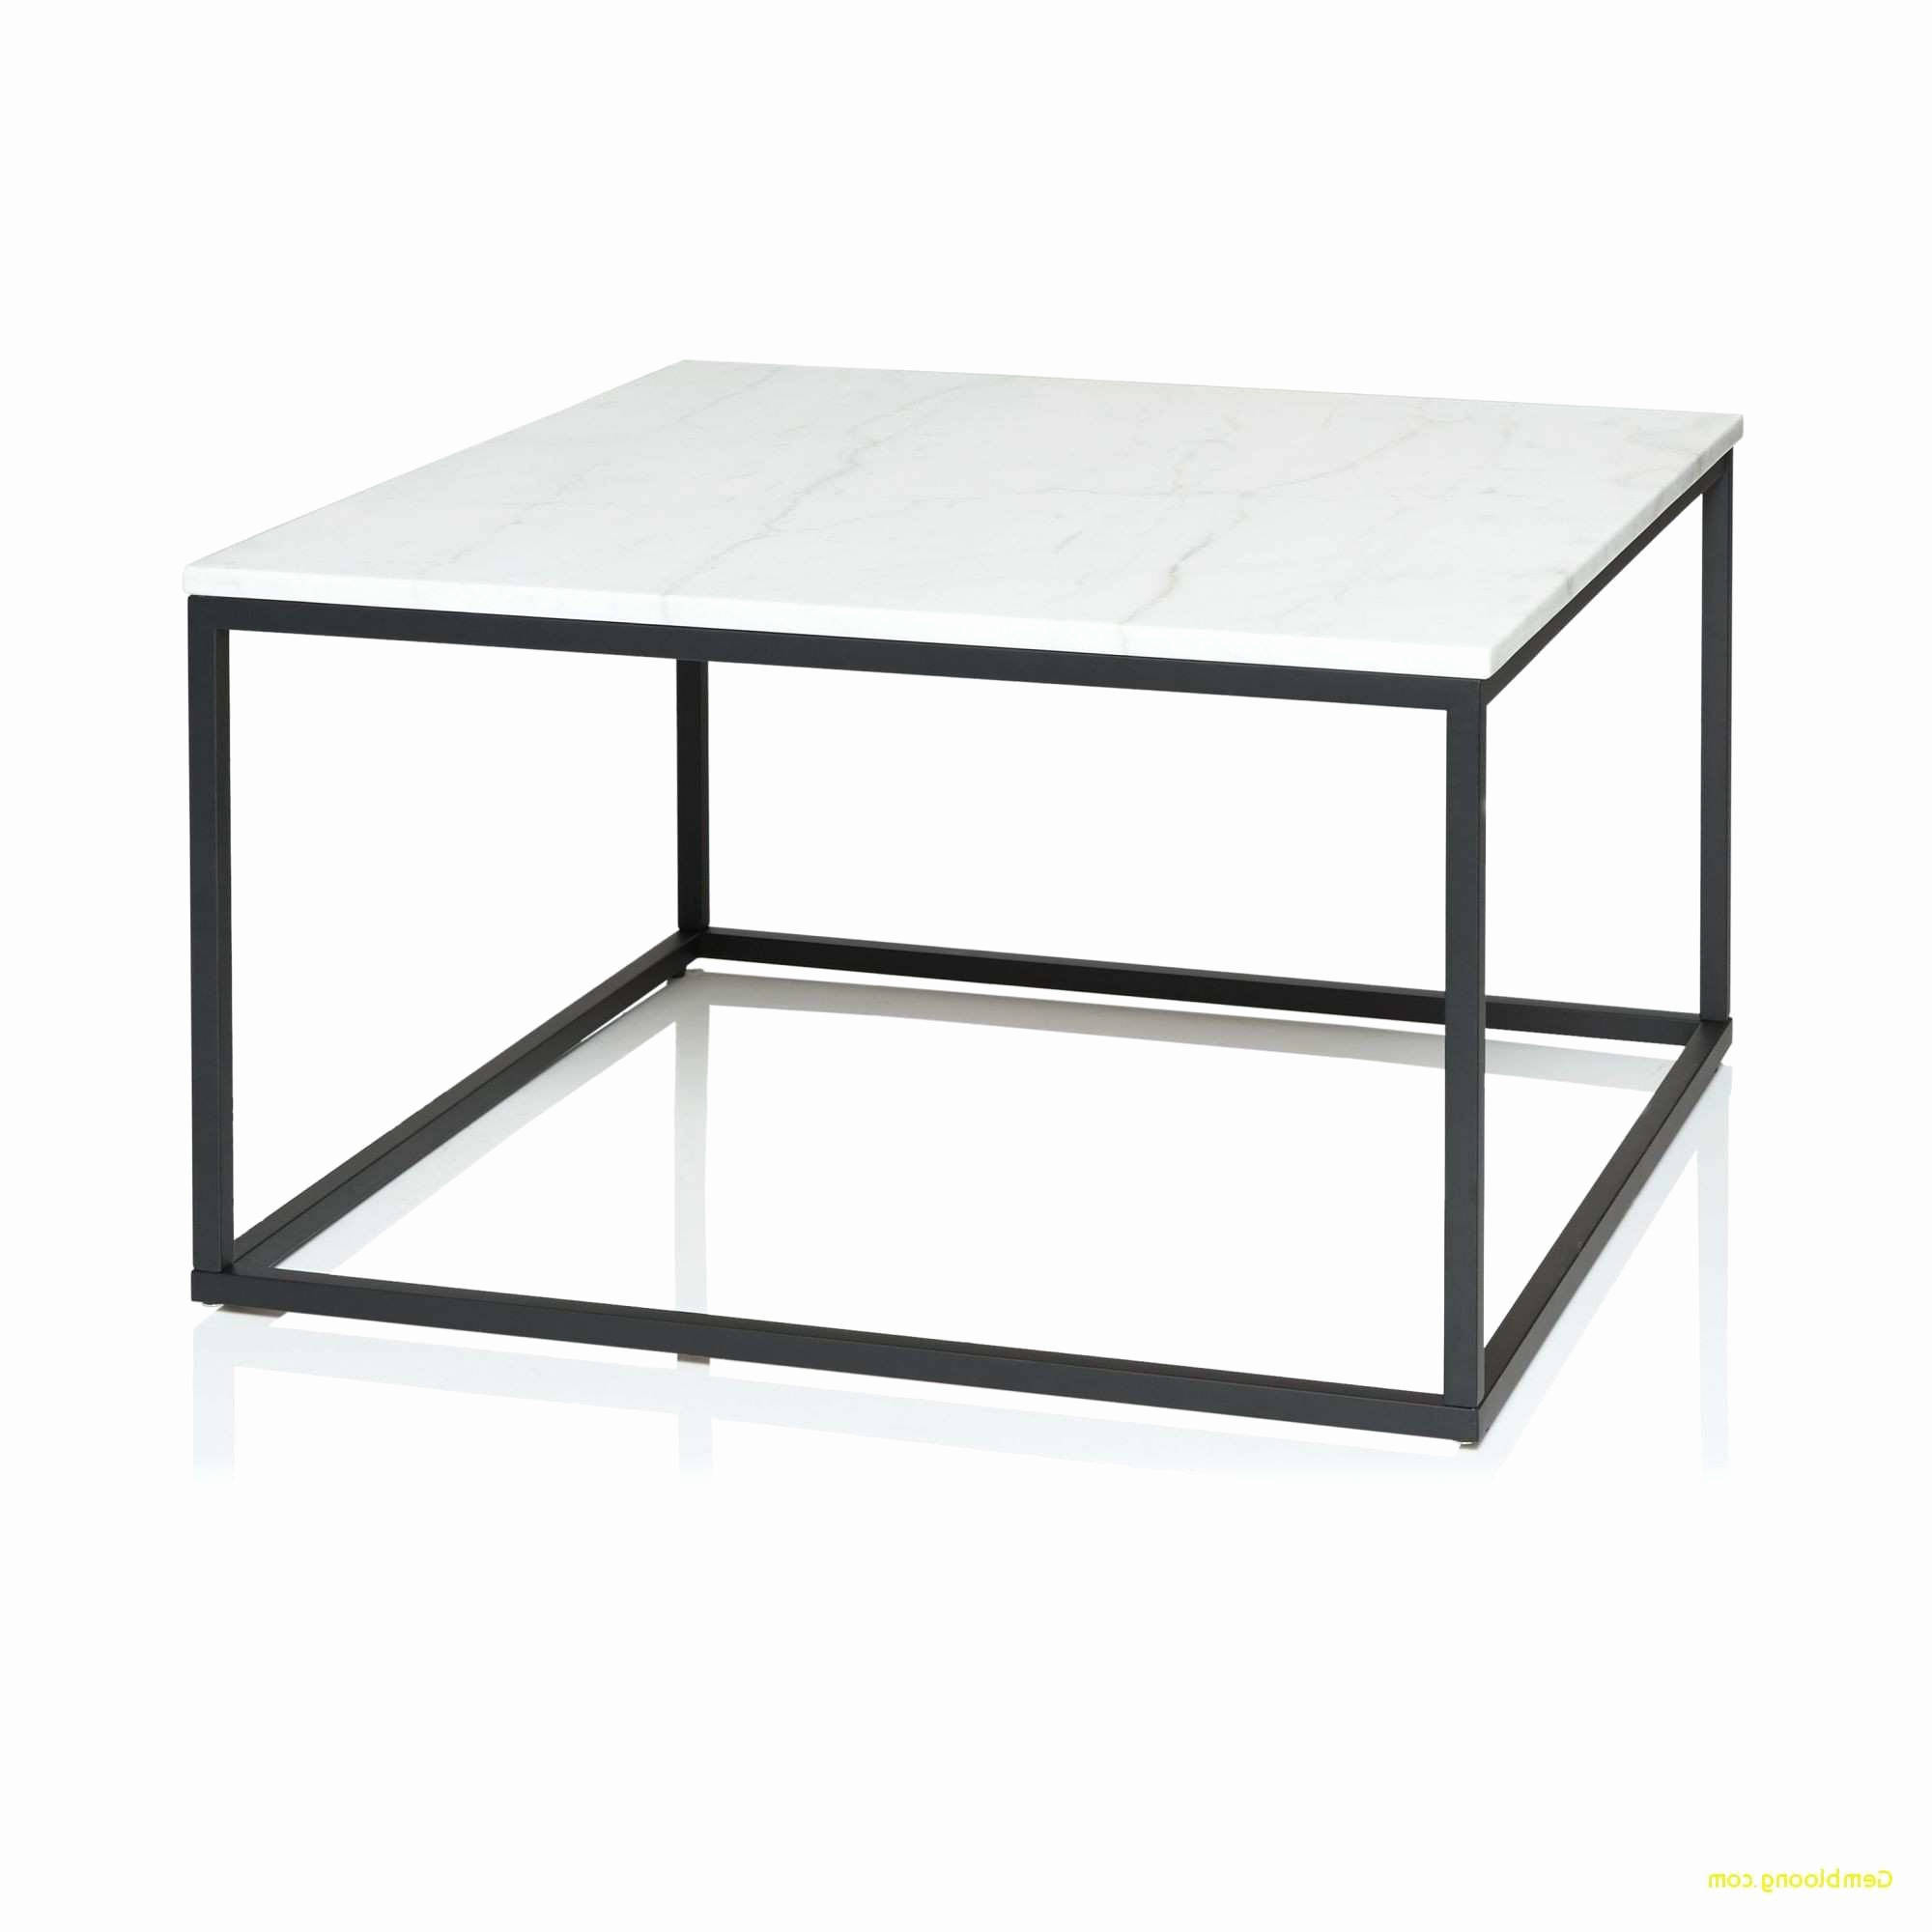 Preferred Peekaboo Acrylic Coffee Tables Intended For Peekaboo Acrylic Coffee Table Lovely 21 Magnificent Marble Top Table (Gallery 5 of 20)